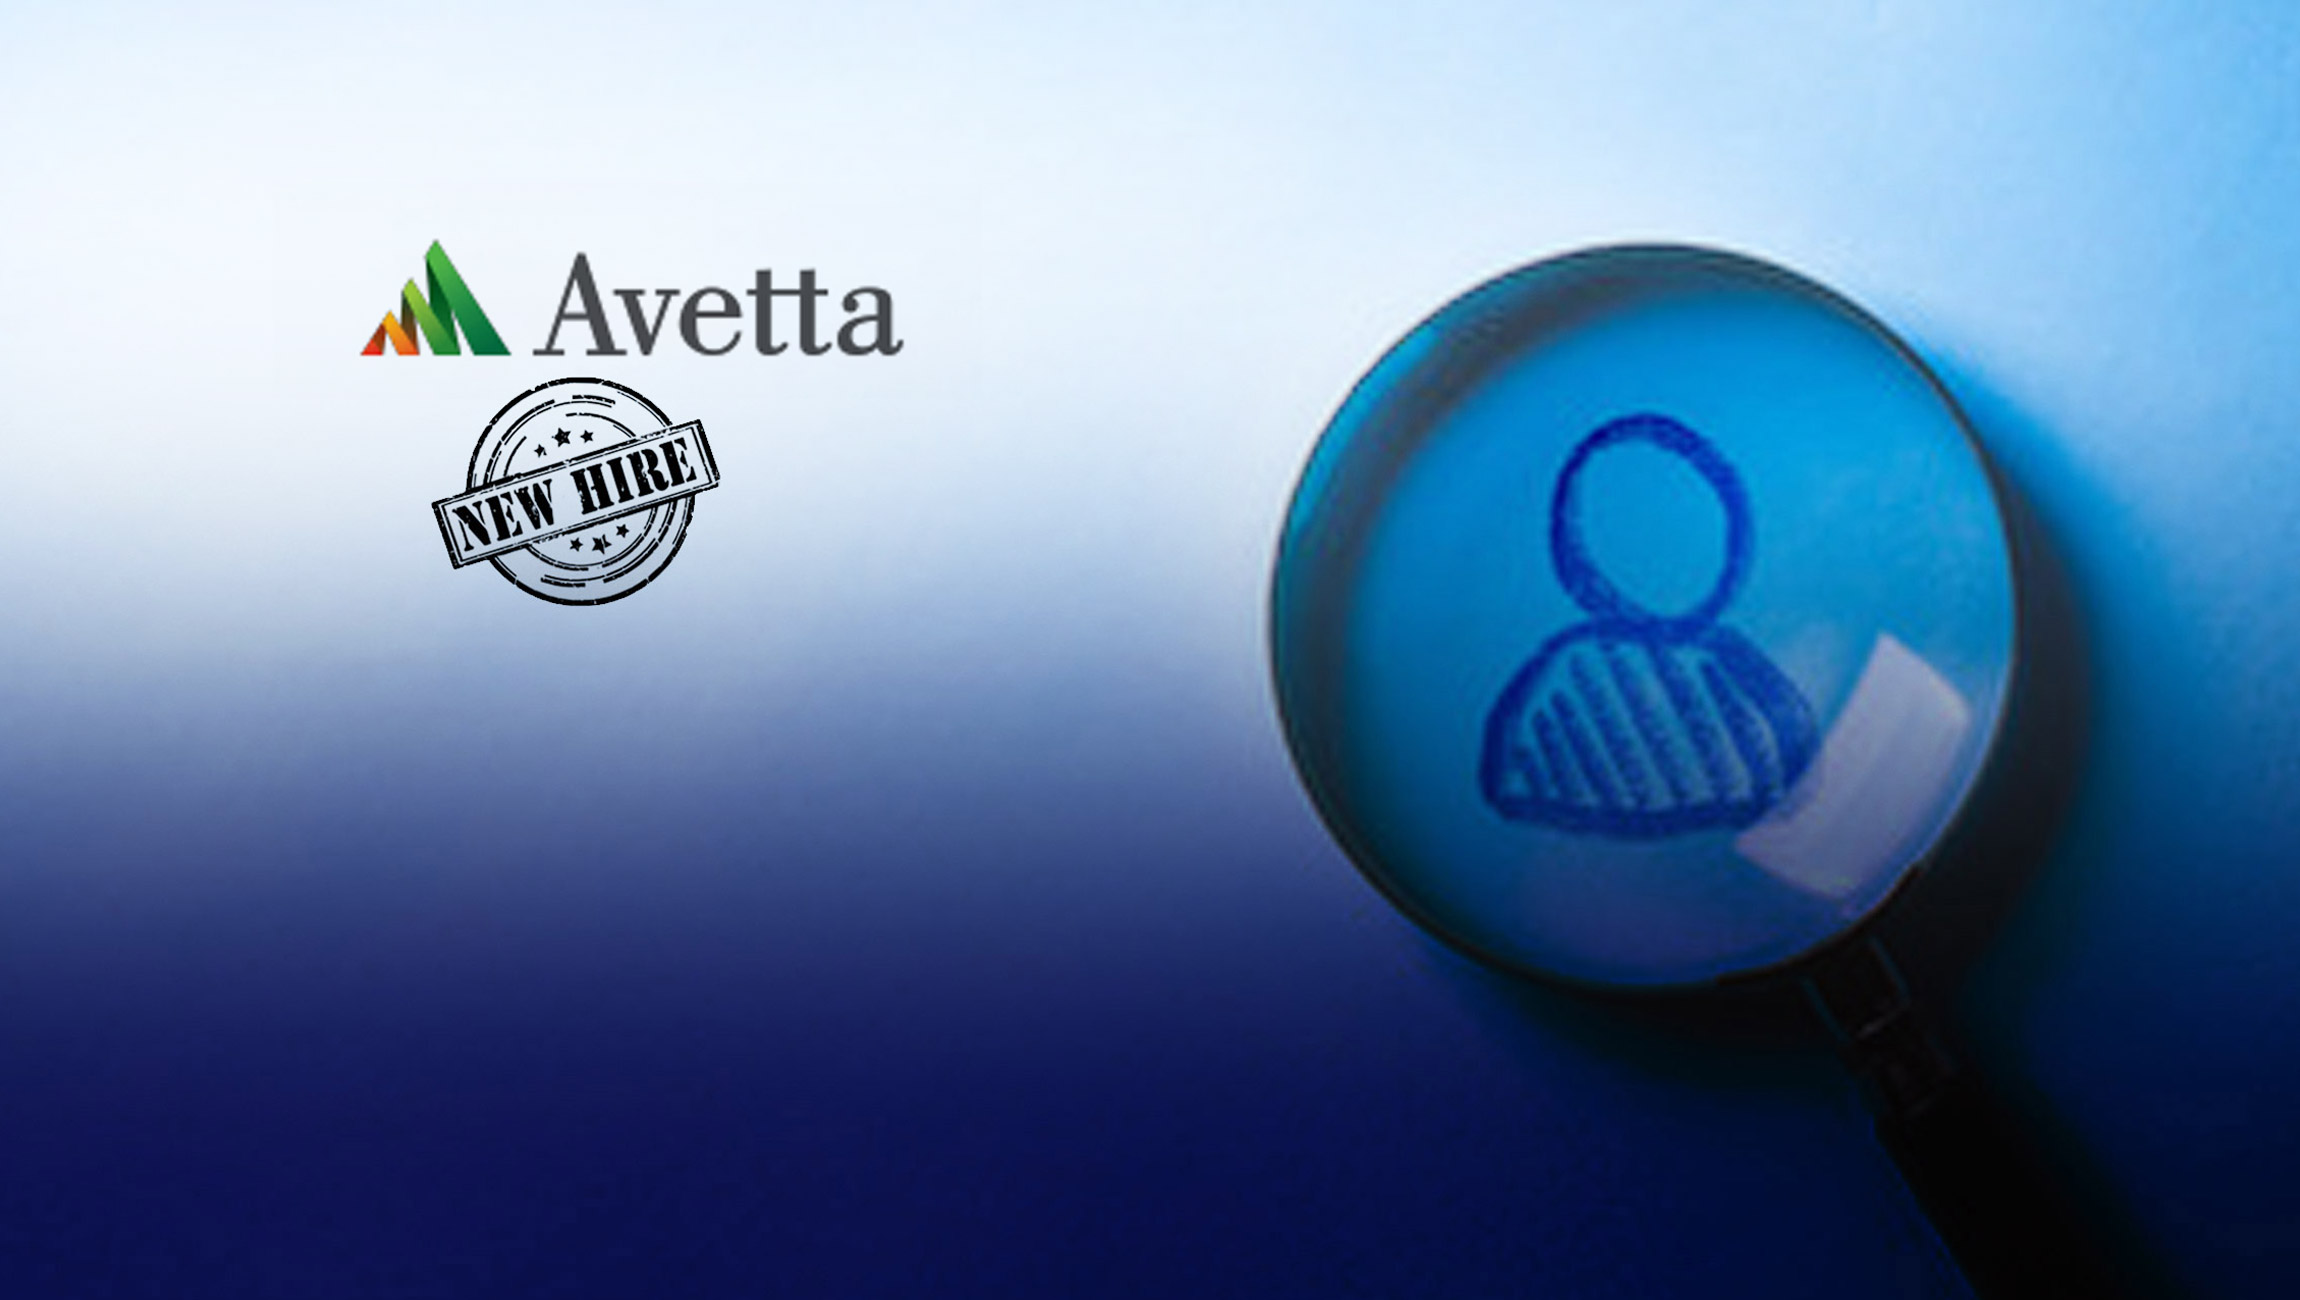 Avetta Announces Two Executive Appointments: Tom McNamara as COO, and Jeff Byal as CFO